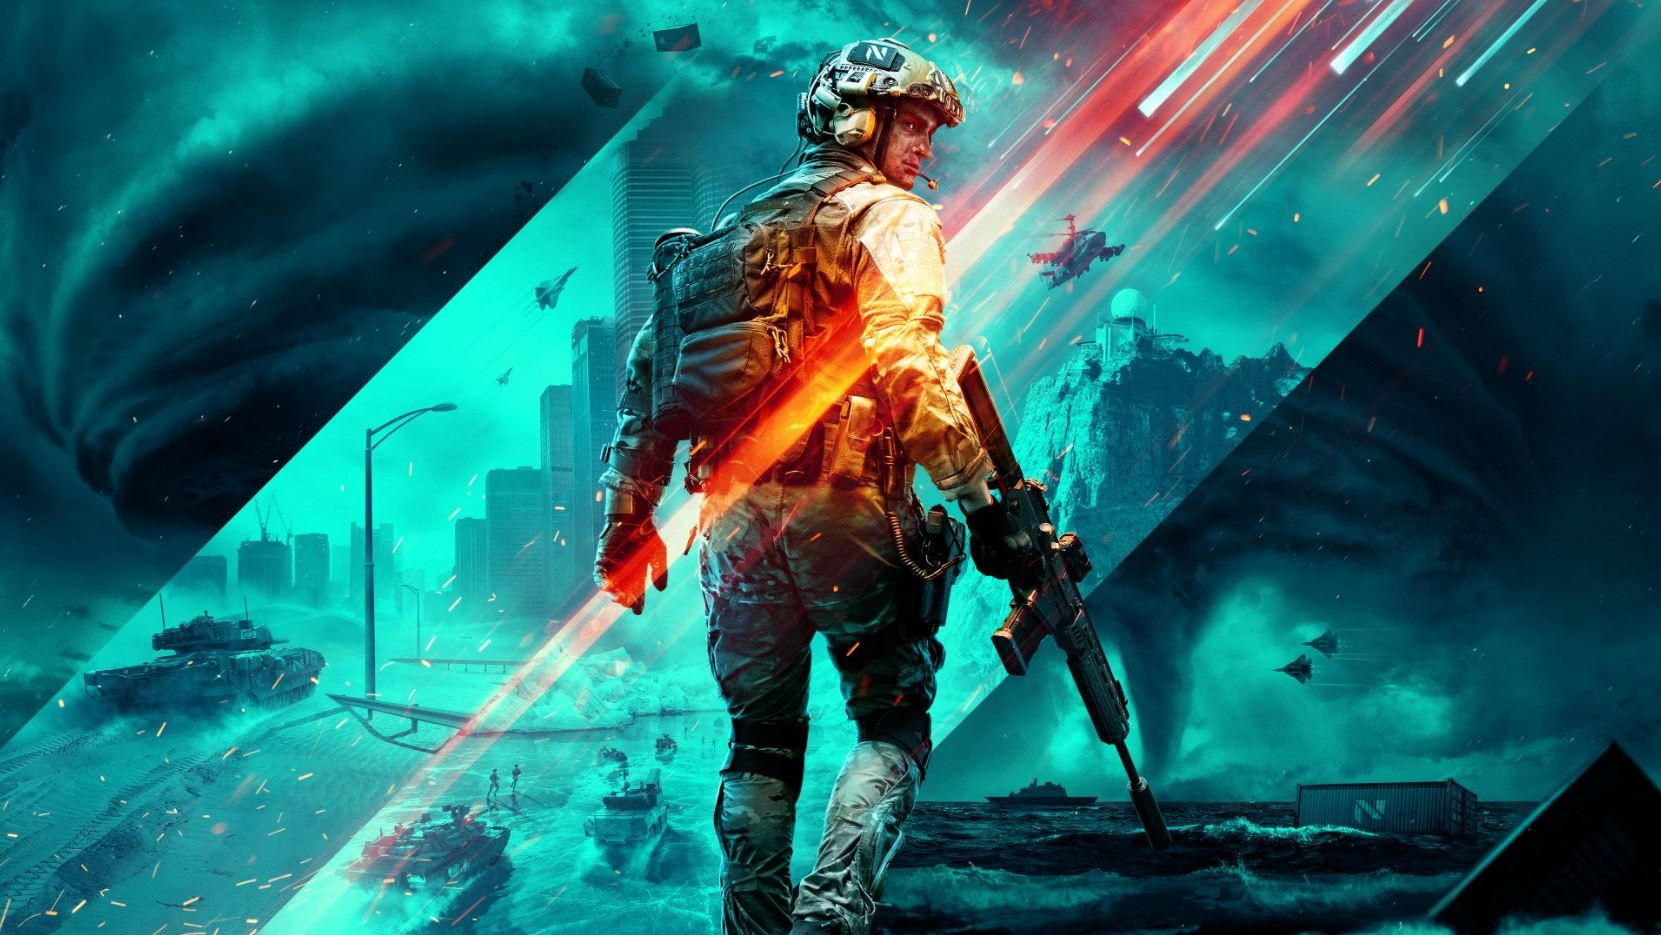 watch-the-battlefield-2042-reveal-trailer-out-on-ps5-and-ps4-in-october-gameplay-reveal-coming-on-sunday